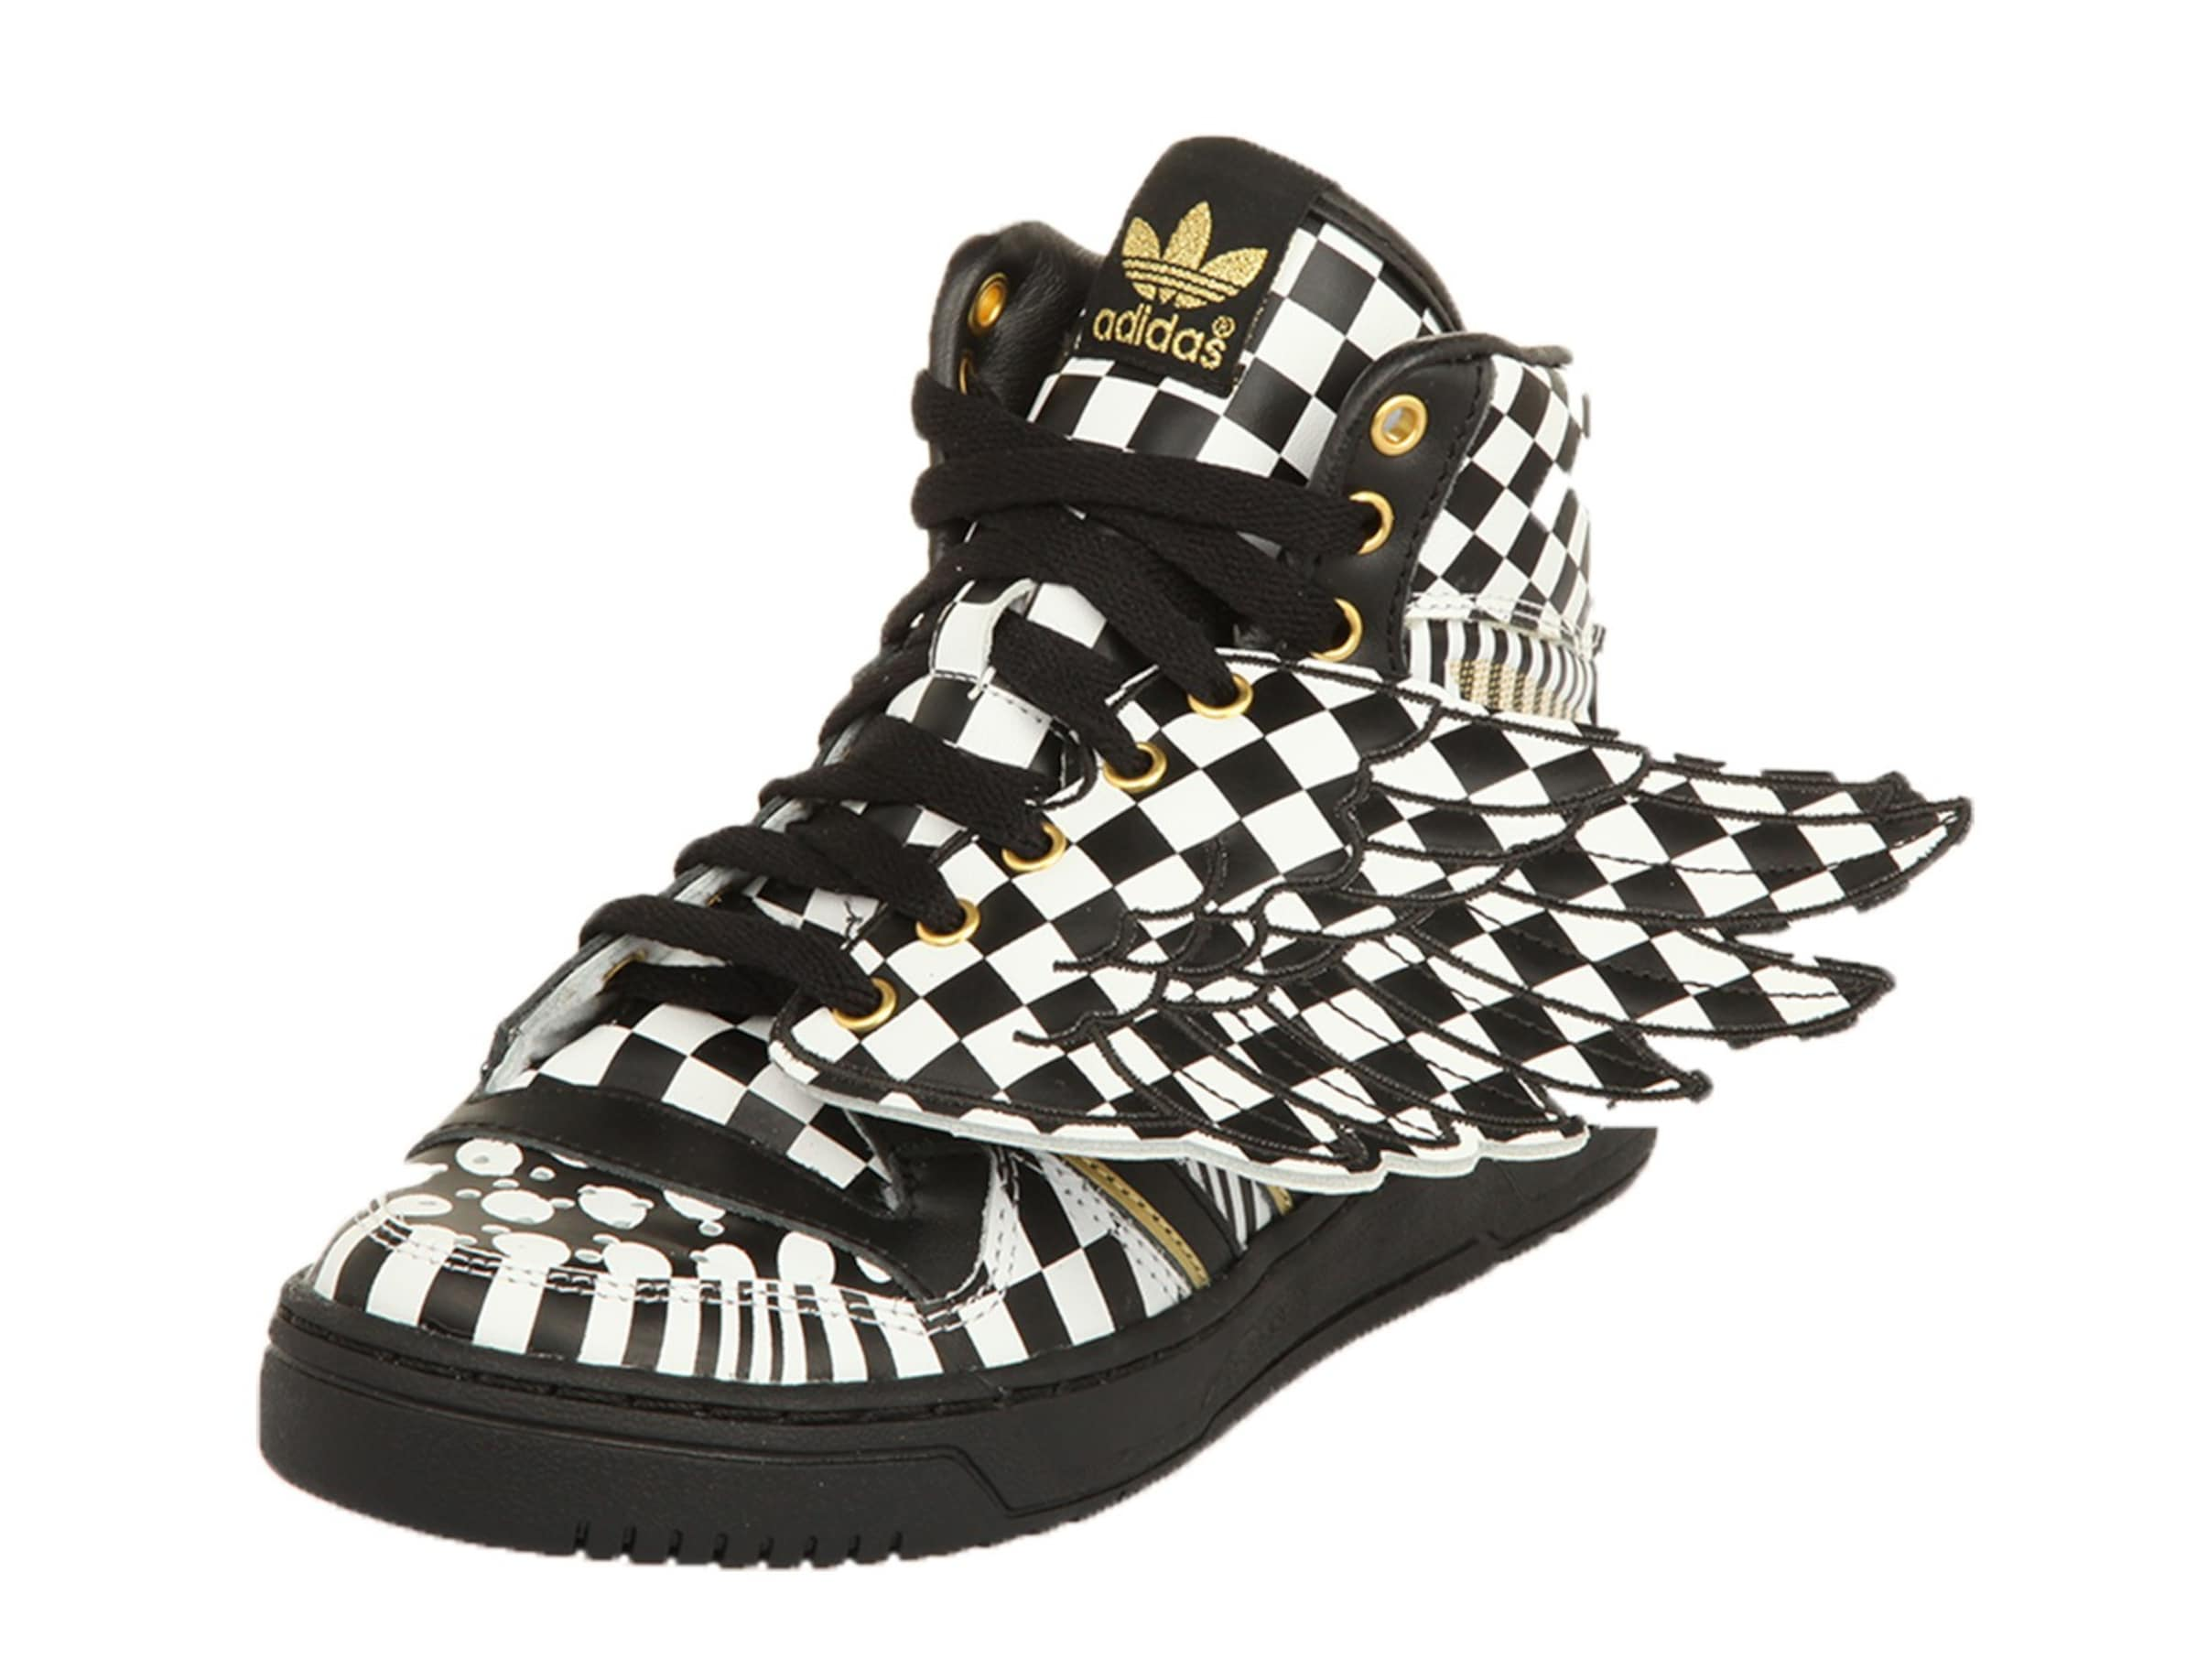 ADIDAS PERFORMANCE | Jeremy Scott TurnschuheJS WINGS OPART in ausgefallenem Design G95768